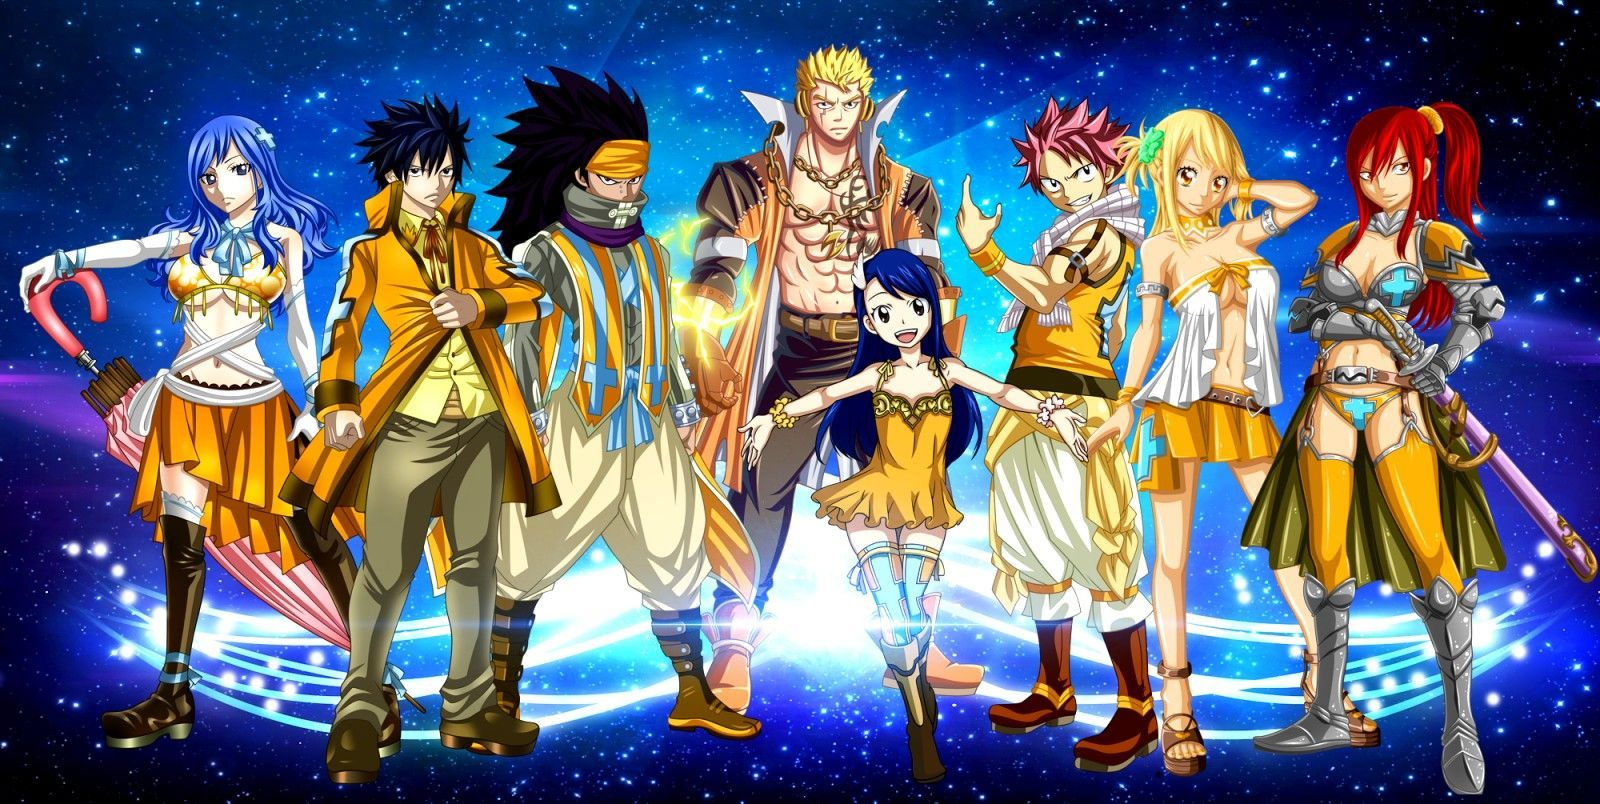 Fairy Tail Wallpapers HD - Wallpaper Cave